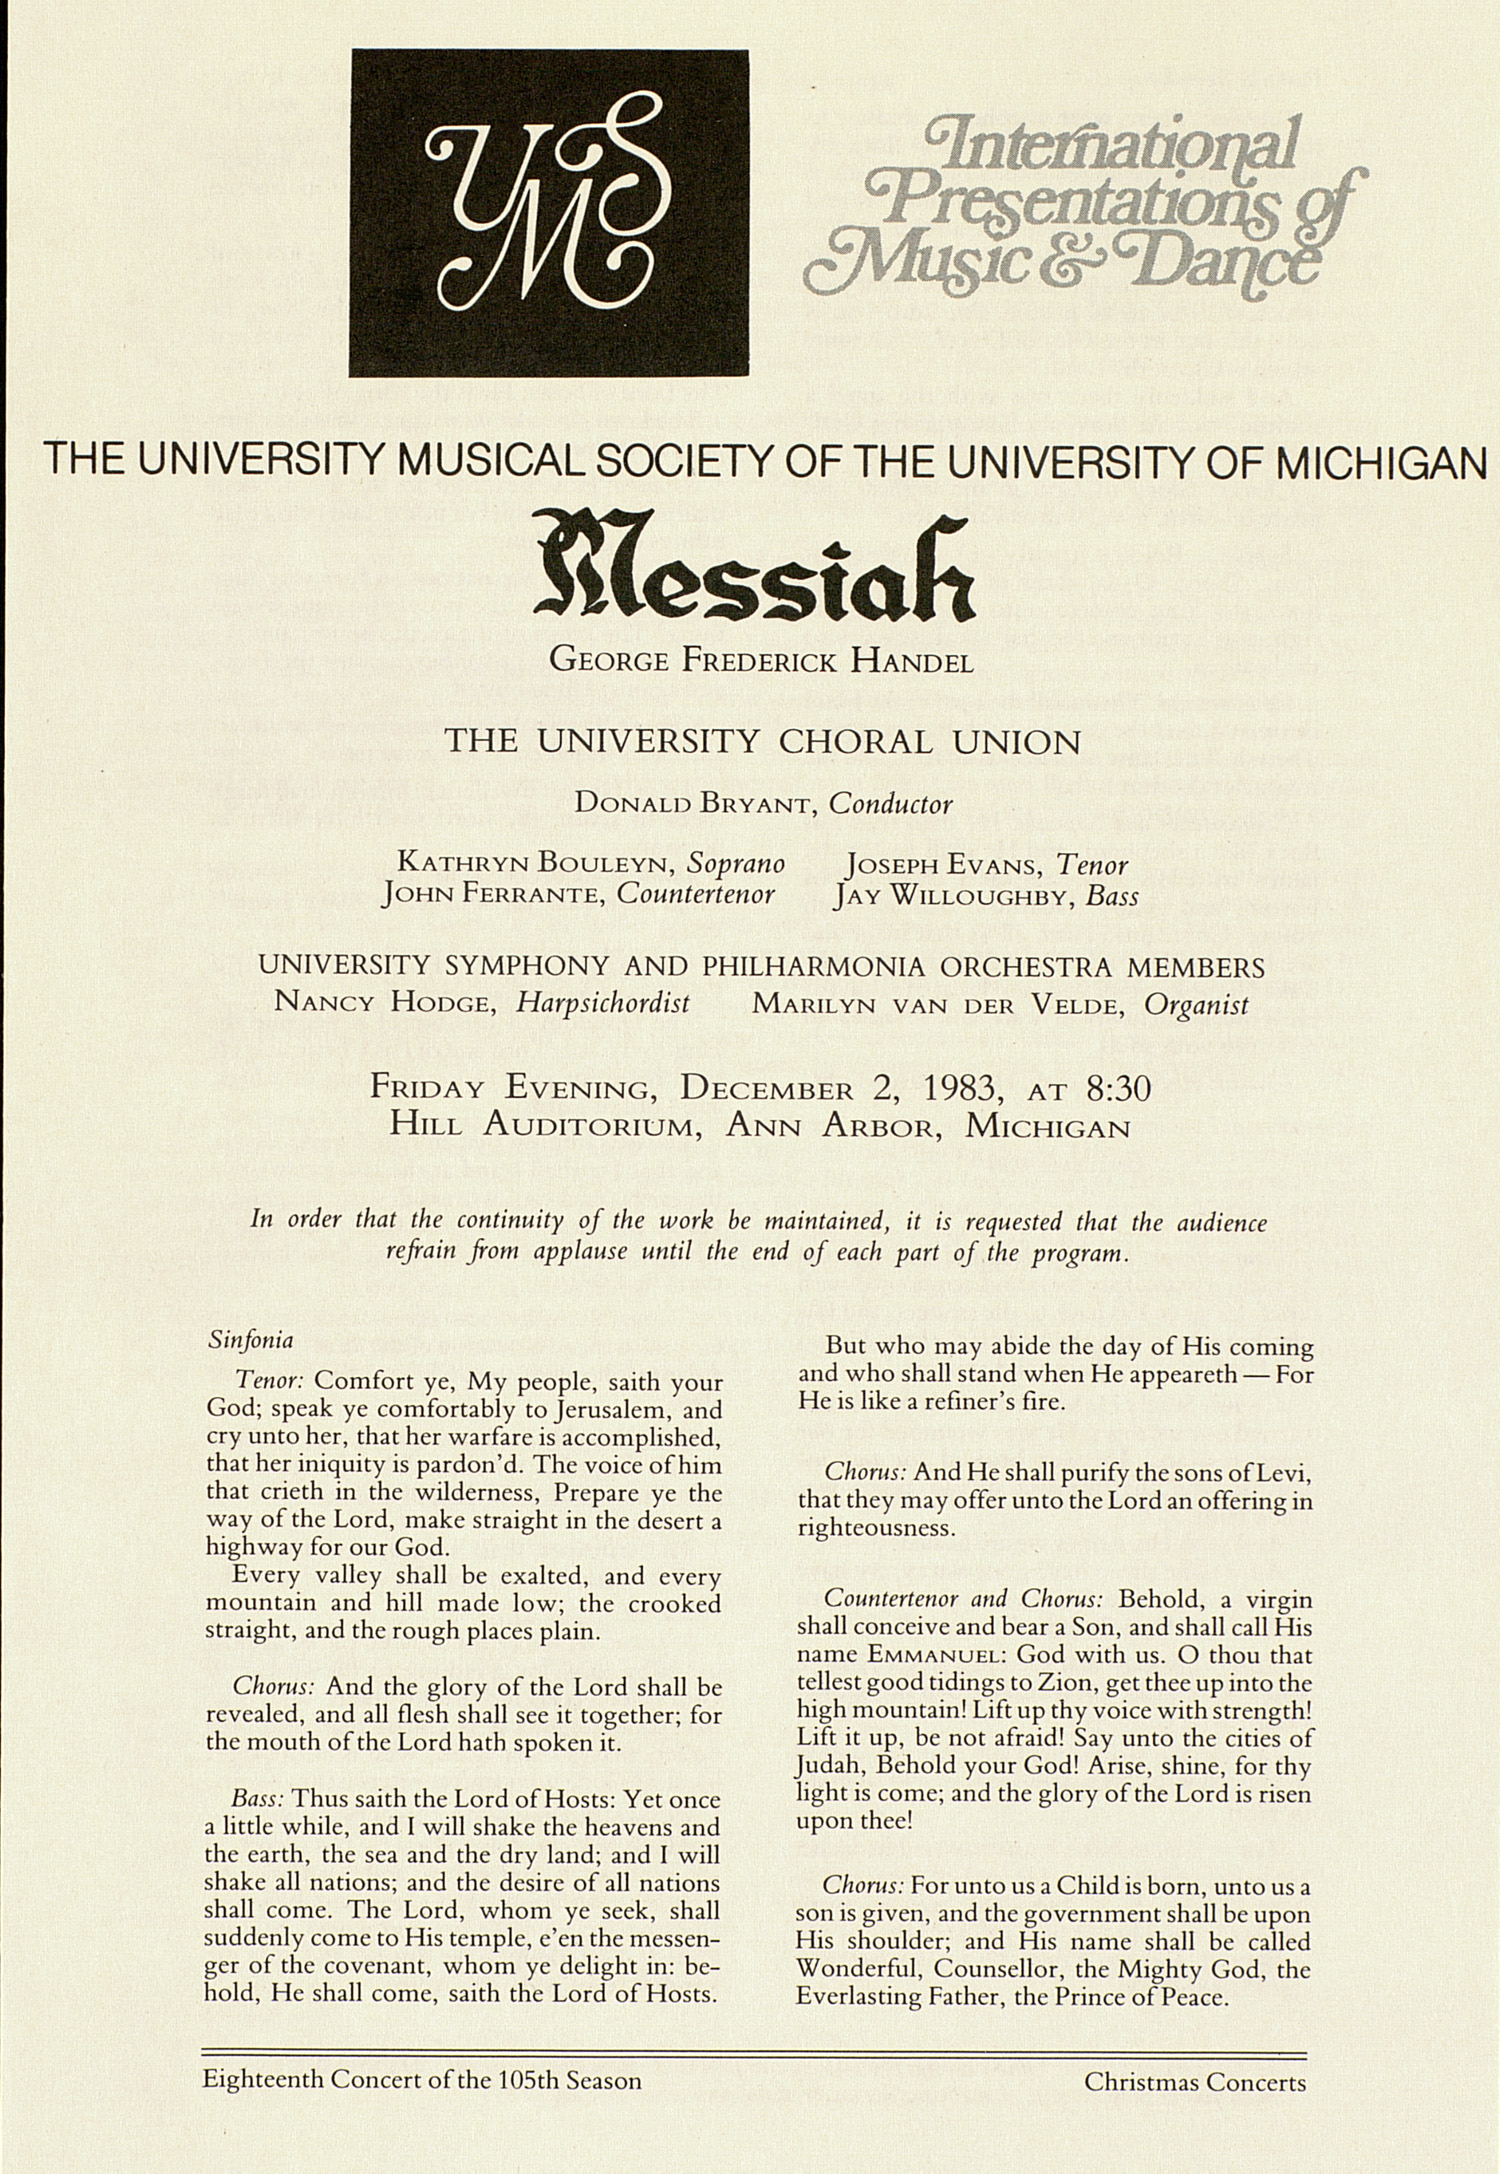 UMS Concert Program, December 2, 1983: Messiah -- George Frederick Handel image